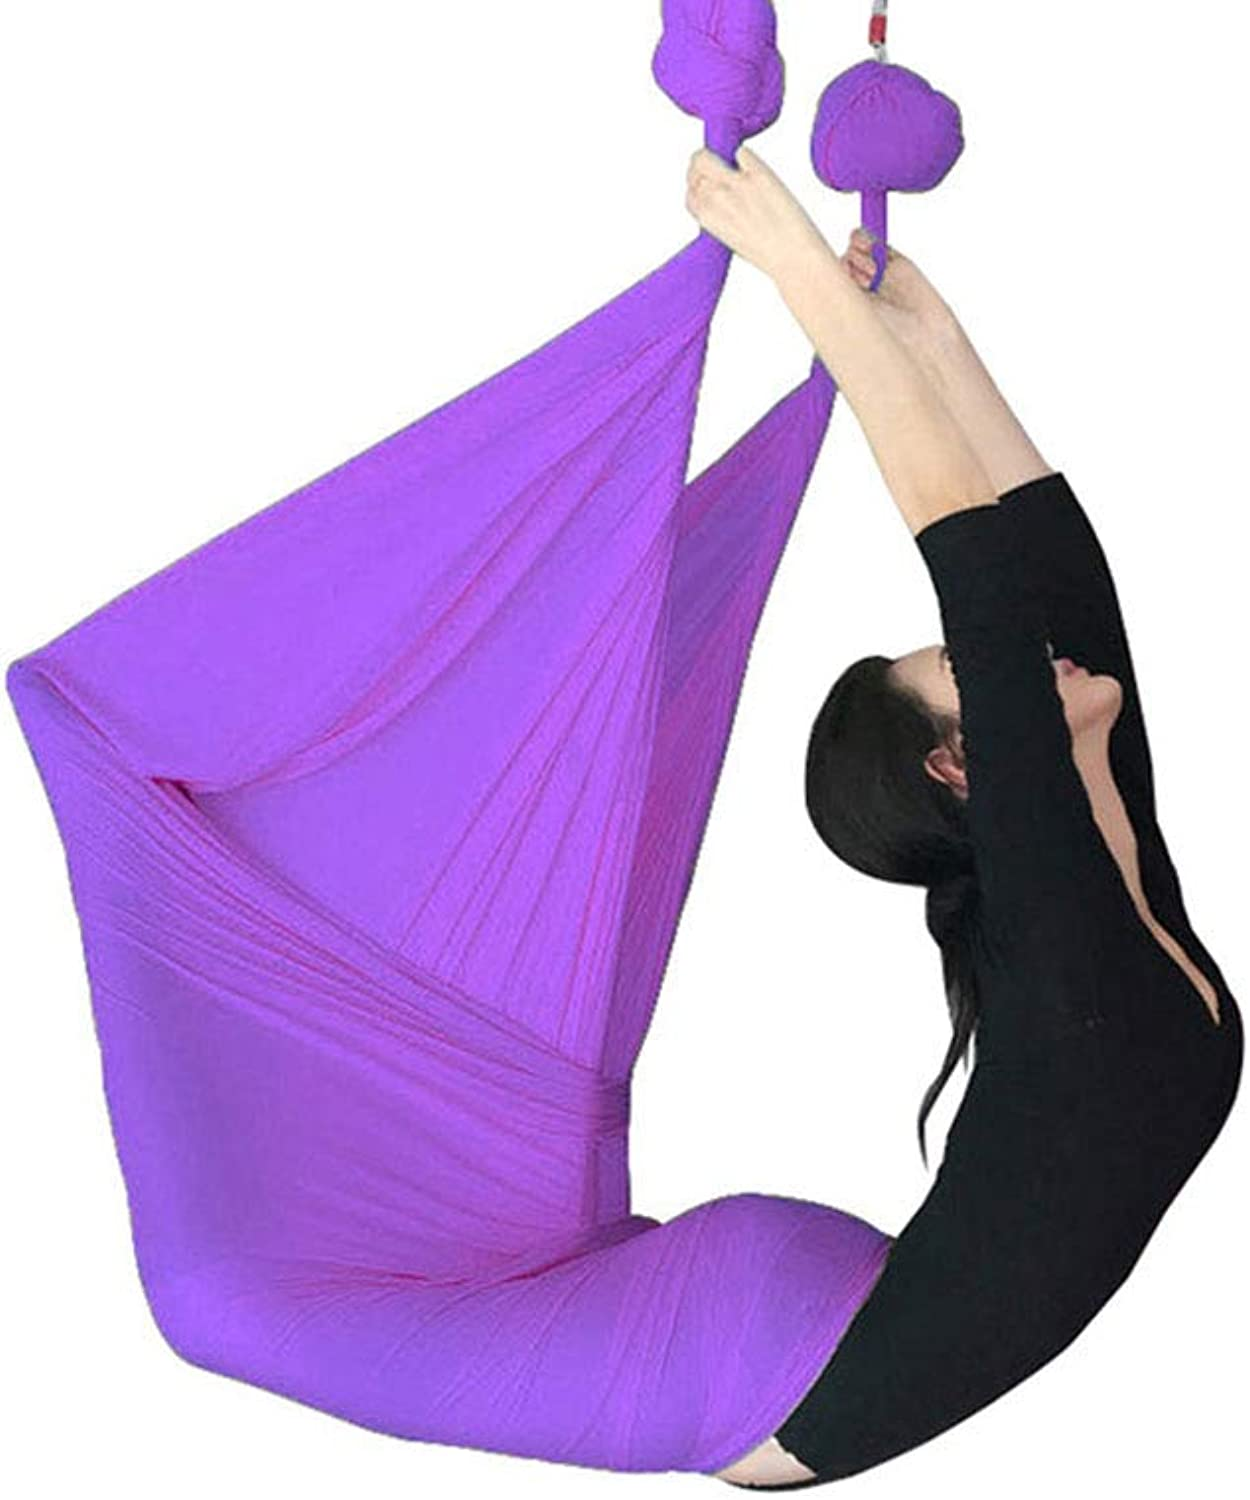 Aerial yoga Hammock Aerial Yoga Hammock Yoga Ingreened Exercise Accessories AntiGravity Yoga Swing Yoga Ingreened Tools Aerial Yoga Set Indoor HighAltitude Yoga Hammock, LoadBearing About 500KG